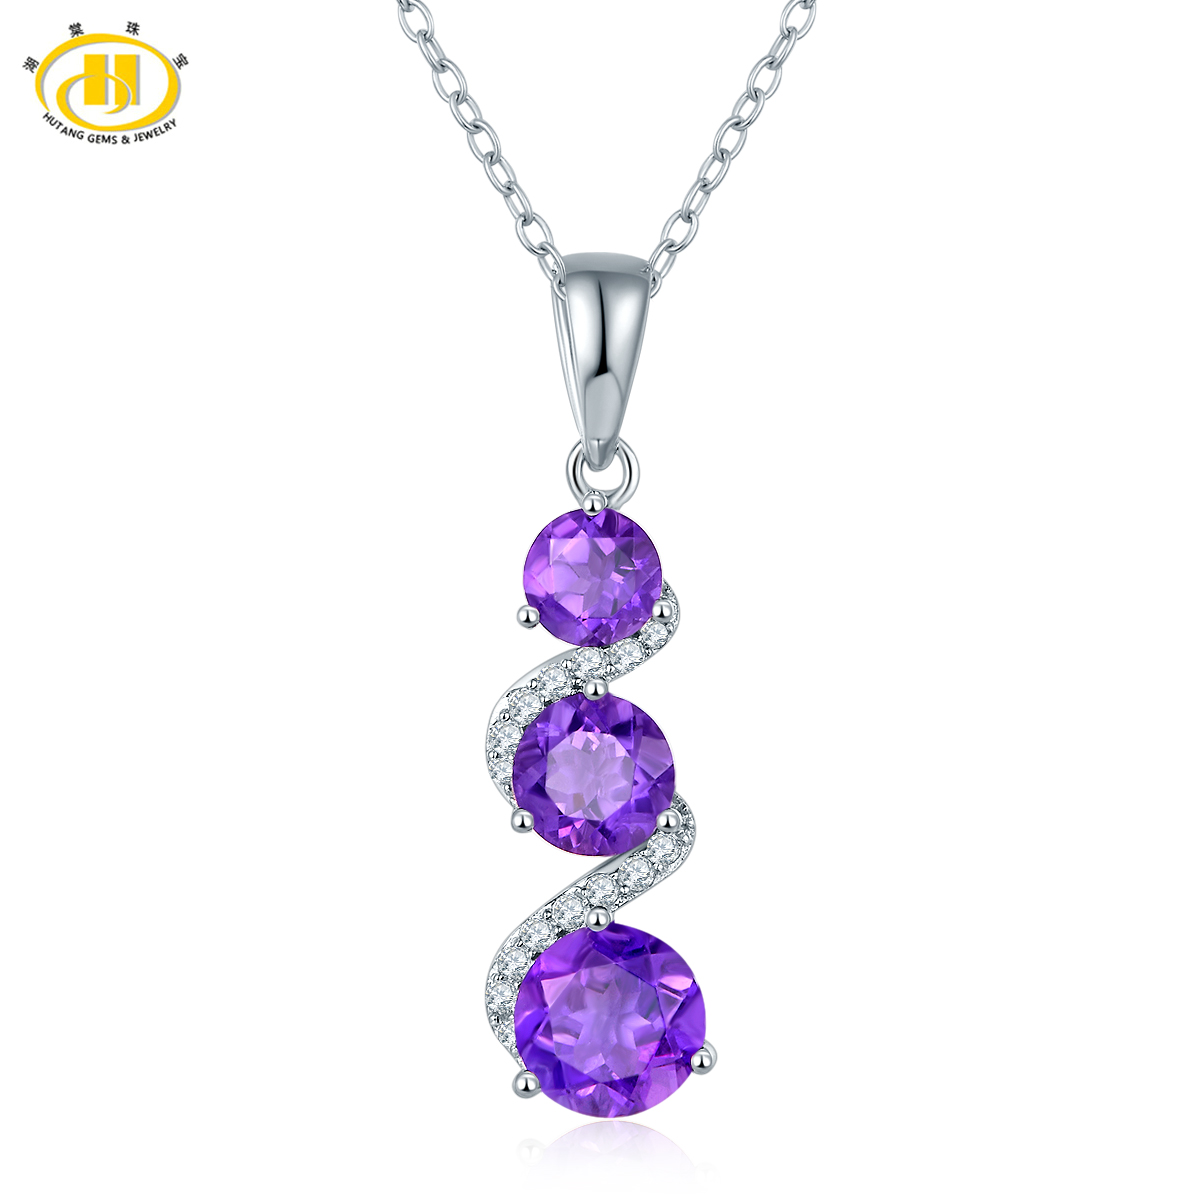 Hutang Classic 3-stone Natural Amethyst Pendant Necklaces Solid 925 Sterling Silver Gemstone Fine Jewelry New Style For Women